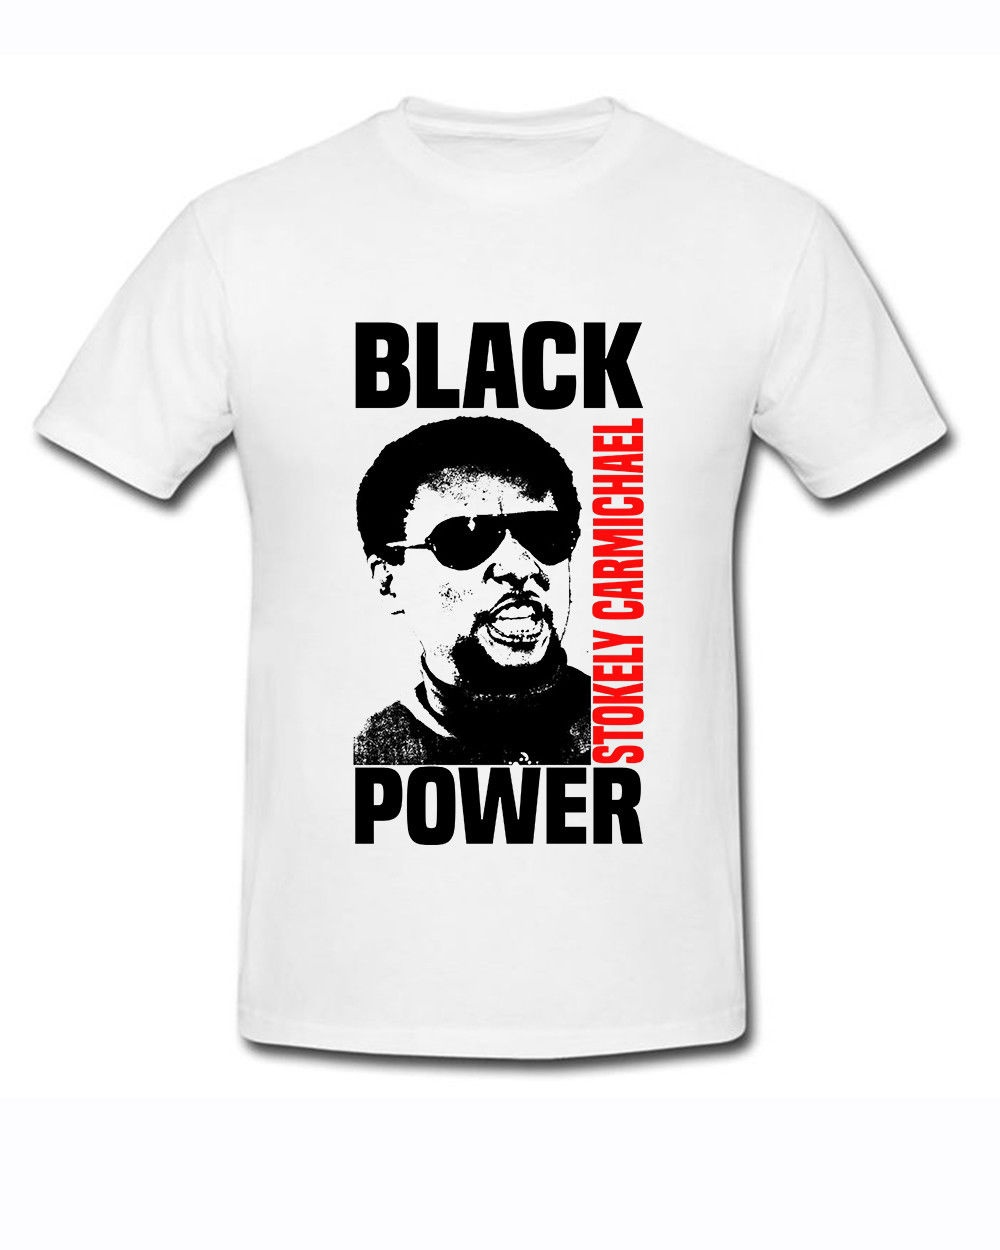 Stokely Carmichael Black Power White T-Shirt Mens Short Sleeve Cotton T-Shirt Fashion T Shirt Tops Clothing